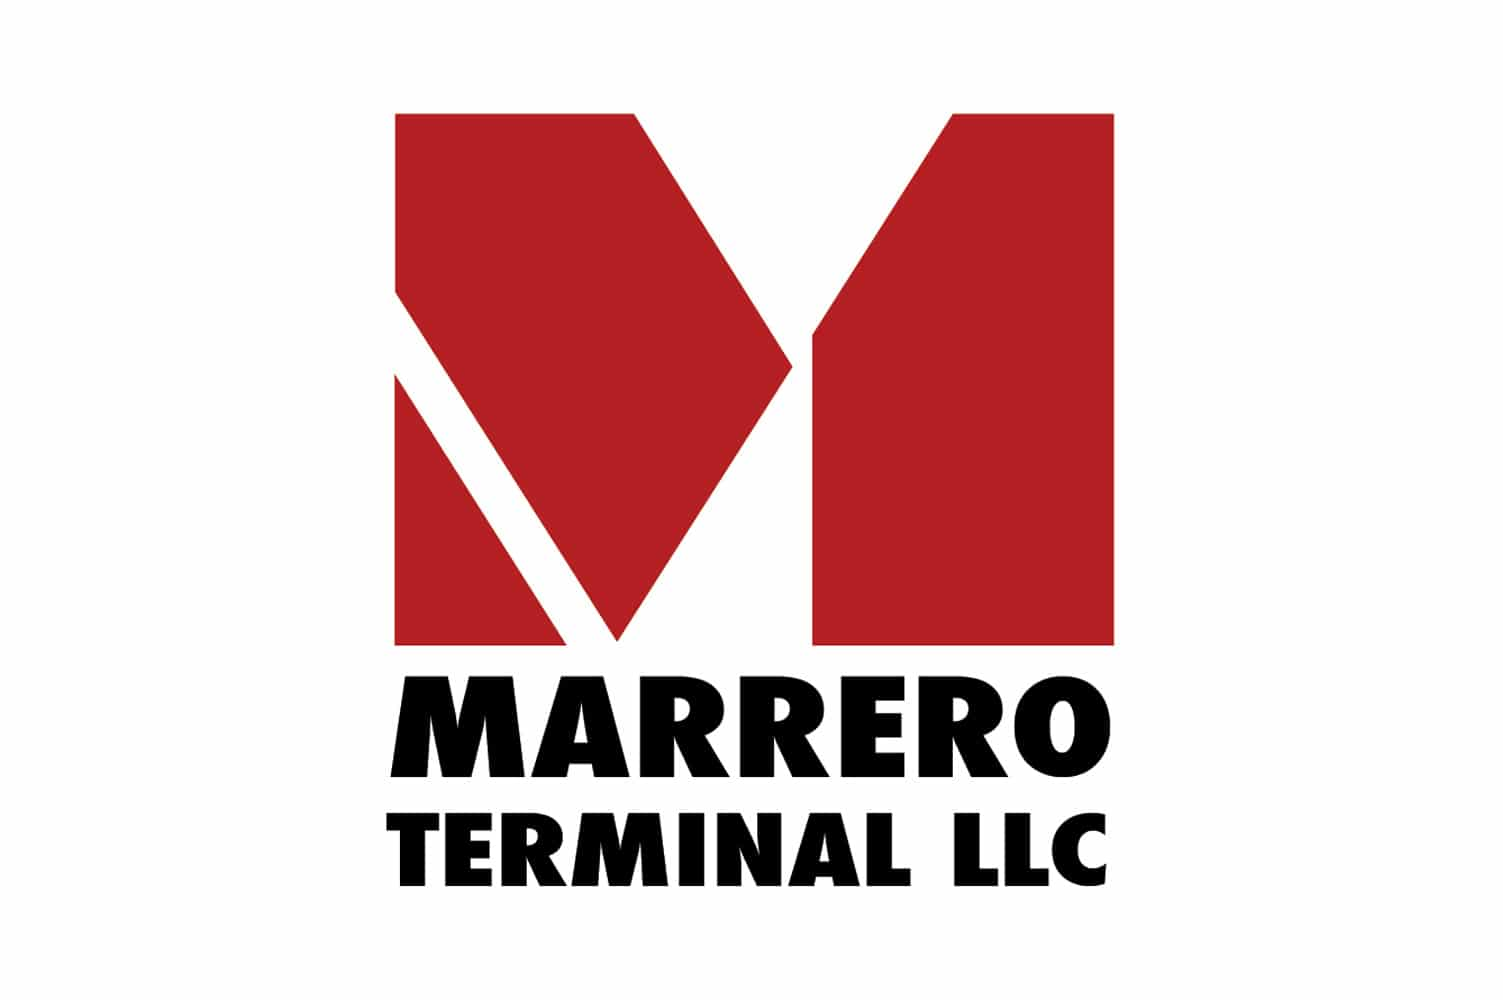 marrero-terminal-logo-design